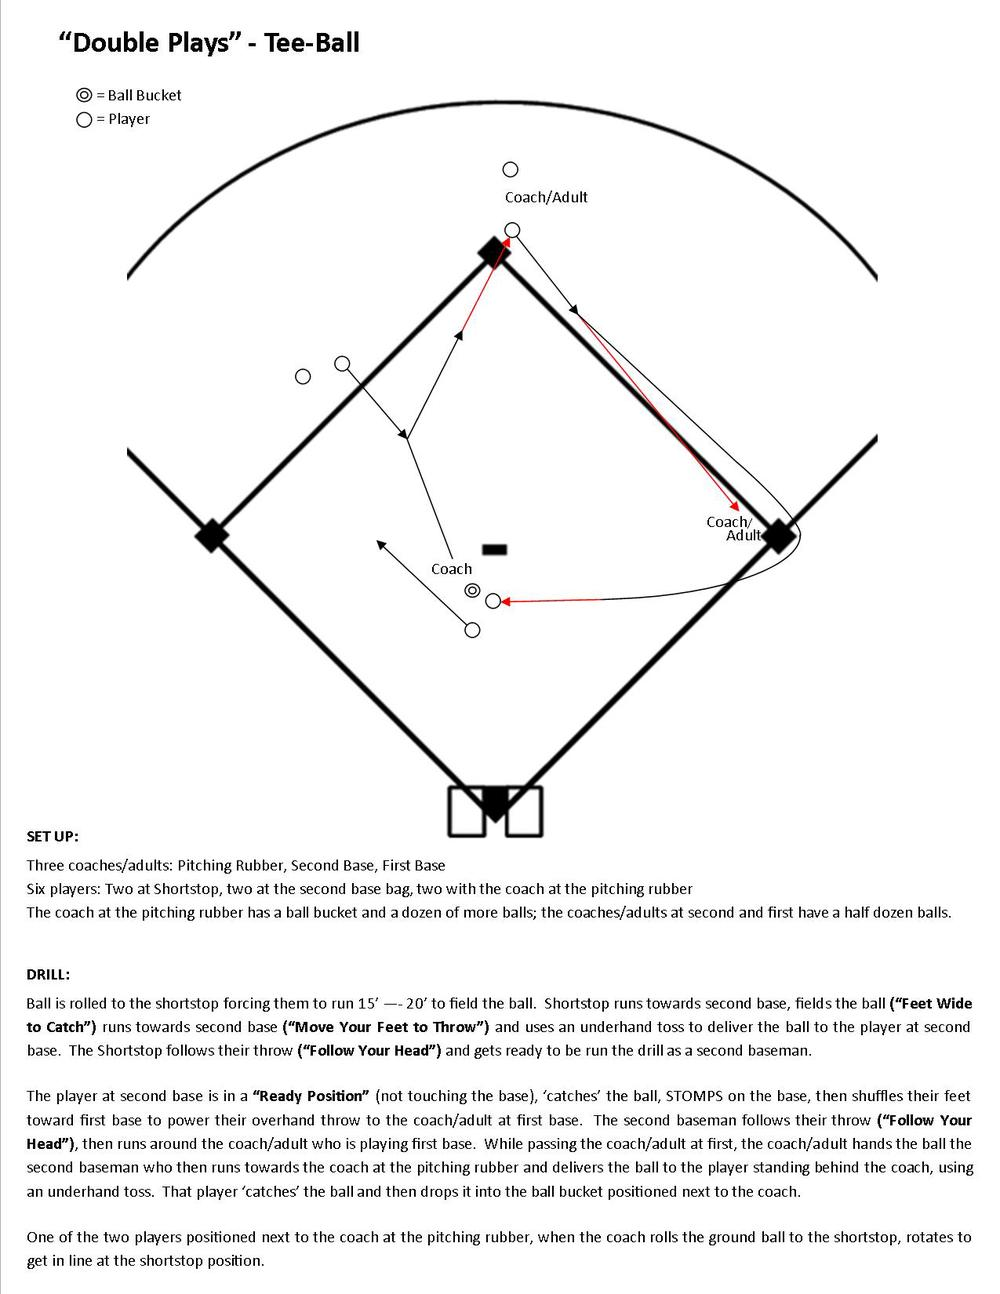 Adapting to running the drill given the mistakes the kids will make and running the drill with less than six players: 1. Kids usually want to 'line up' within a few inches of each other*.  Shortstop Position: Place two cones at shortstop, one for the player who will be fielding the next ground ball and the other cone 5'-10' away for the next player.  Second Base Position: we instruct the extra player to stand behind the assisting adult, while the player participating in the drill is positioned next to the base.  After the player participating in the drill moves away from the base, the coach/adult tells the next player to get into position next to the base. Players positioned next to the coach at the pitching rubber: just before the coach rolls the ground ball to the shortstop, the coach instructs one of the players standing next to them to rotate to the 'waiting cone' at shortstop. 2. The kids will not catch many of the throws to second base - the coach/adult at second base always keeps a ball in hand.  When the player at second base misses a throw, the coach hands them a new ball in order to keep the drill going. (RULE: the players are not allowed to chase missed throws.) 3. The kids throwing the ball from second base to first base, the first couple of days the drill is run, misunderstand that their throw is supposed to be overhand; they will run to first and make and underhand toss.  Simply continue to remind them that this LONG throw is overhand.  After running this drill at a couple of practices this will not be much of an issue. 4. Some throws to the coach/adult at first base will not be accurate.  The coach/adult at first keeps a spare ball in hand at all times to be available to hand to the player as they run by.  It is also important for the coach/adult to recognize the throwing strength of the next player who will be throwing to them.  When a child who does not have as much throwing strength comes up, the coach/adult at first base moves closer to second base to a distance more in line with that particular child's throwing capability.  (This coach/adult will be moving a fair amount throughout the drill) If fewer than six kids participating in the drill:  If five players: eliminate the extra player at second base.  If four players: eliminate the extra player next to the coach at the pitching rubber.  The single player there waits to 'catch' the underhand toss from the player running around the coach/adult at first base.  They drop the ball in the bucket, then runs to the 'waiting cone' at shortstop. (Note: if the tossed ball goes far past them we remind them of the RULE: 'players are not allowed to chase missed throw' and instruct them to let the ball go and rotate to the 'waiting cone' at shortstop.   * The natural survival instinct in a child drives them to stick as close as possible to the kids ahead of them in line in order to reduce the possibility of someone else getting in line ahead of them (to be the next to get food, protection, etc.)  In modern society this should not be a concern, but until kids mature their basic survival instincts dominate their behavior.  Given an understanding of this and other reasons behind young children's behavior makes it easier for the coaches/adults working with them to not allow these behaviors cause frustration.  They can then lead the kids with greater empathy and reduce their urge to fight behaviors that are difficult to change and/or use strategies to overcome these behaviors.